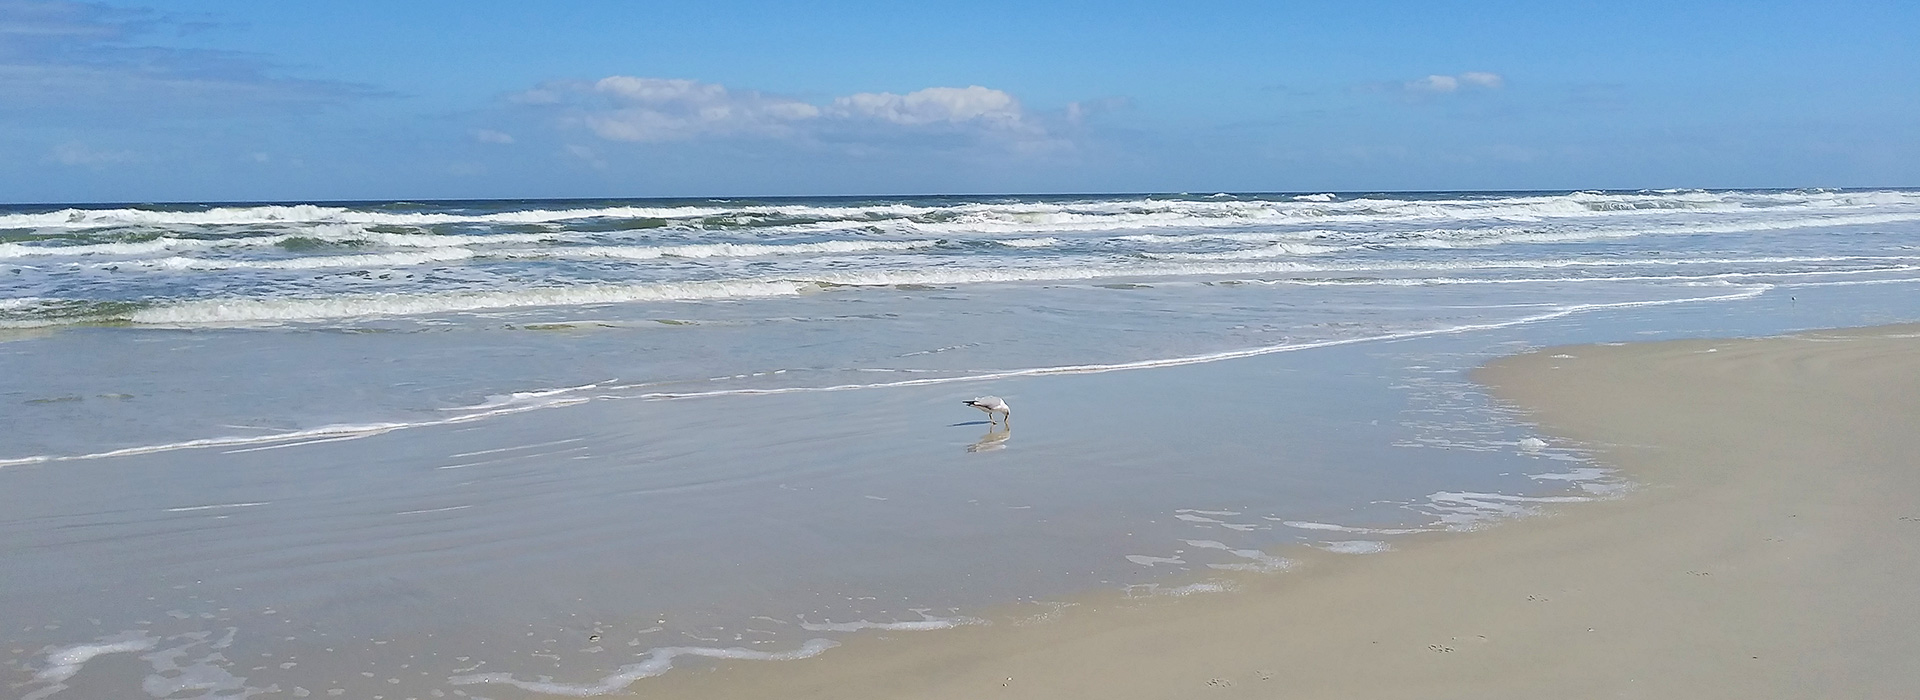 Beachfront view with seagull